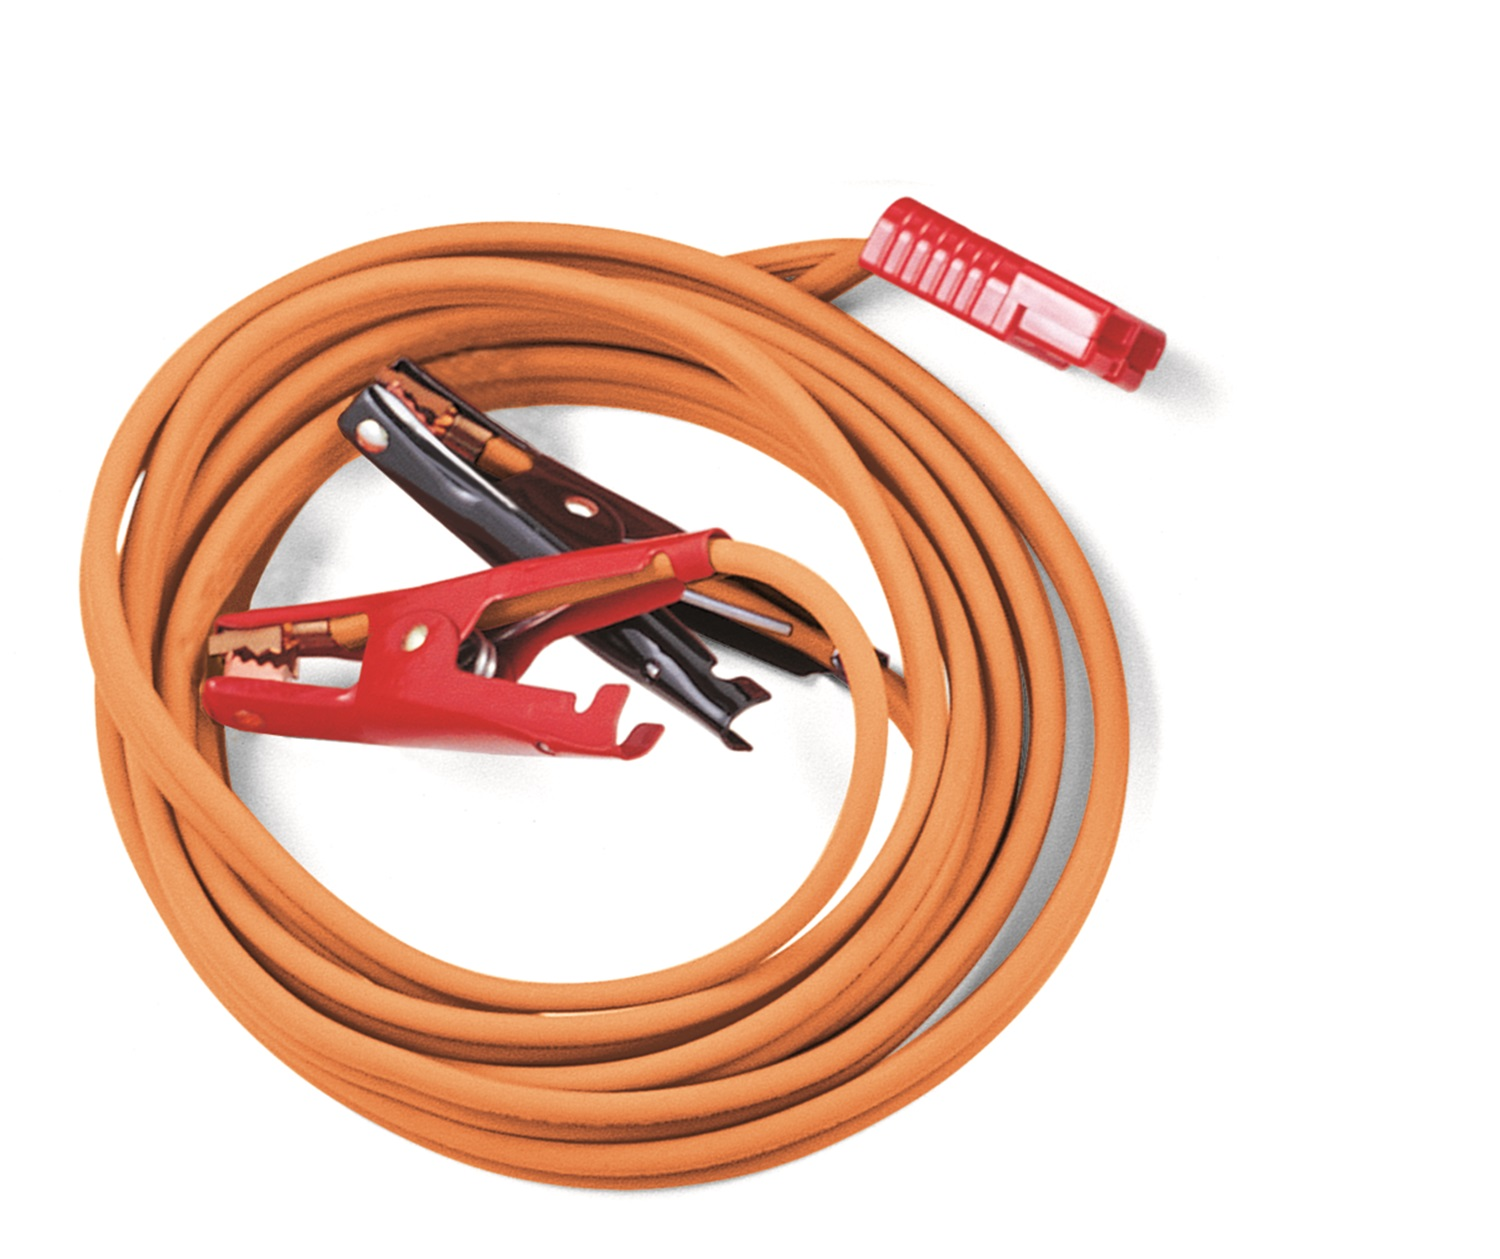 canada battery jumper cable in canada. Black Bedroom Furniture Sets. Home Design Ideas